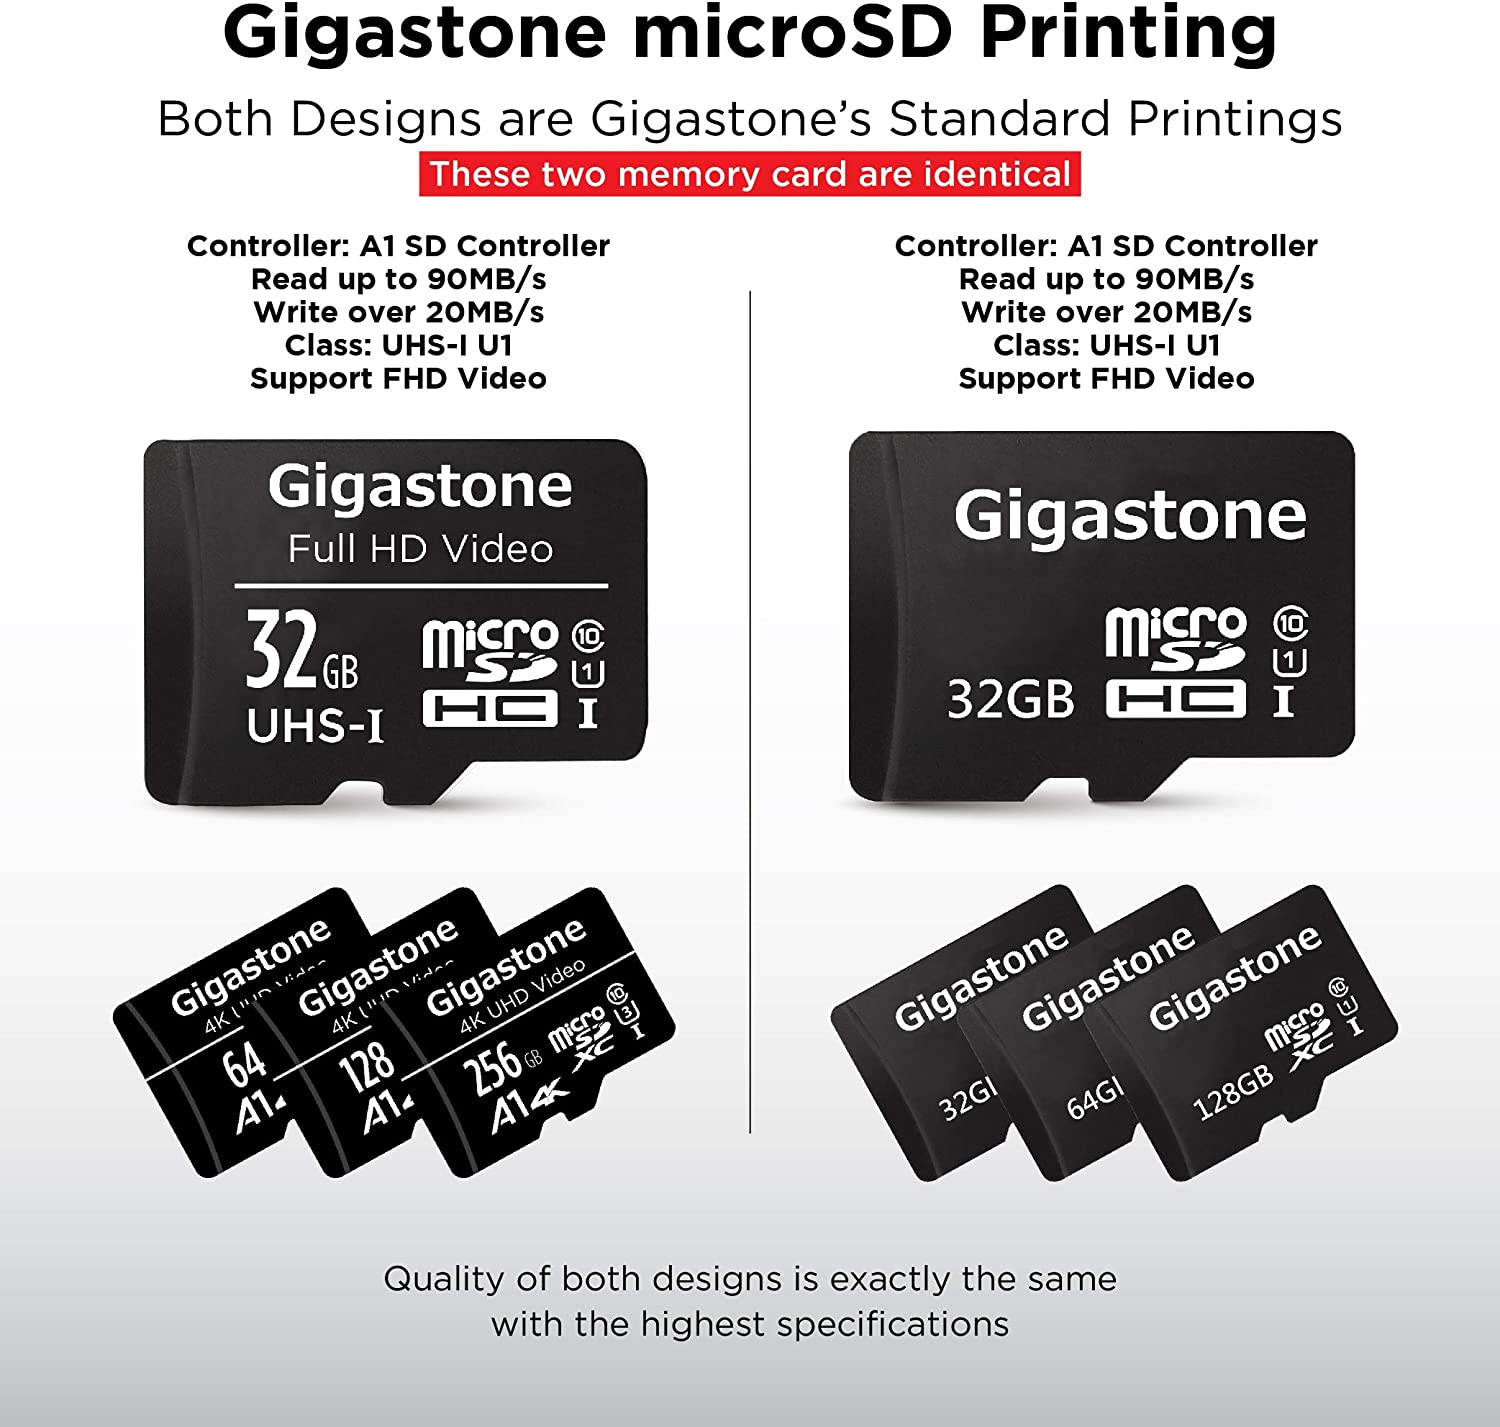 Gigastone 32GB 5-Pack Micro SD Card, Full HD Video, Surveillance Security Cam Action Camera Drone, 90MB/s Micro SDHC UHS-I U1 C10 Class 10